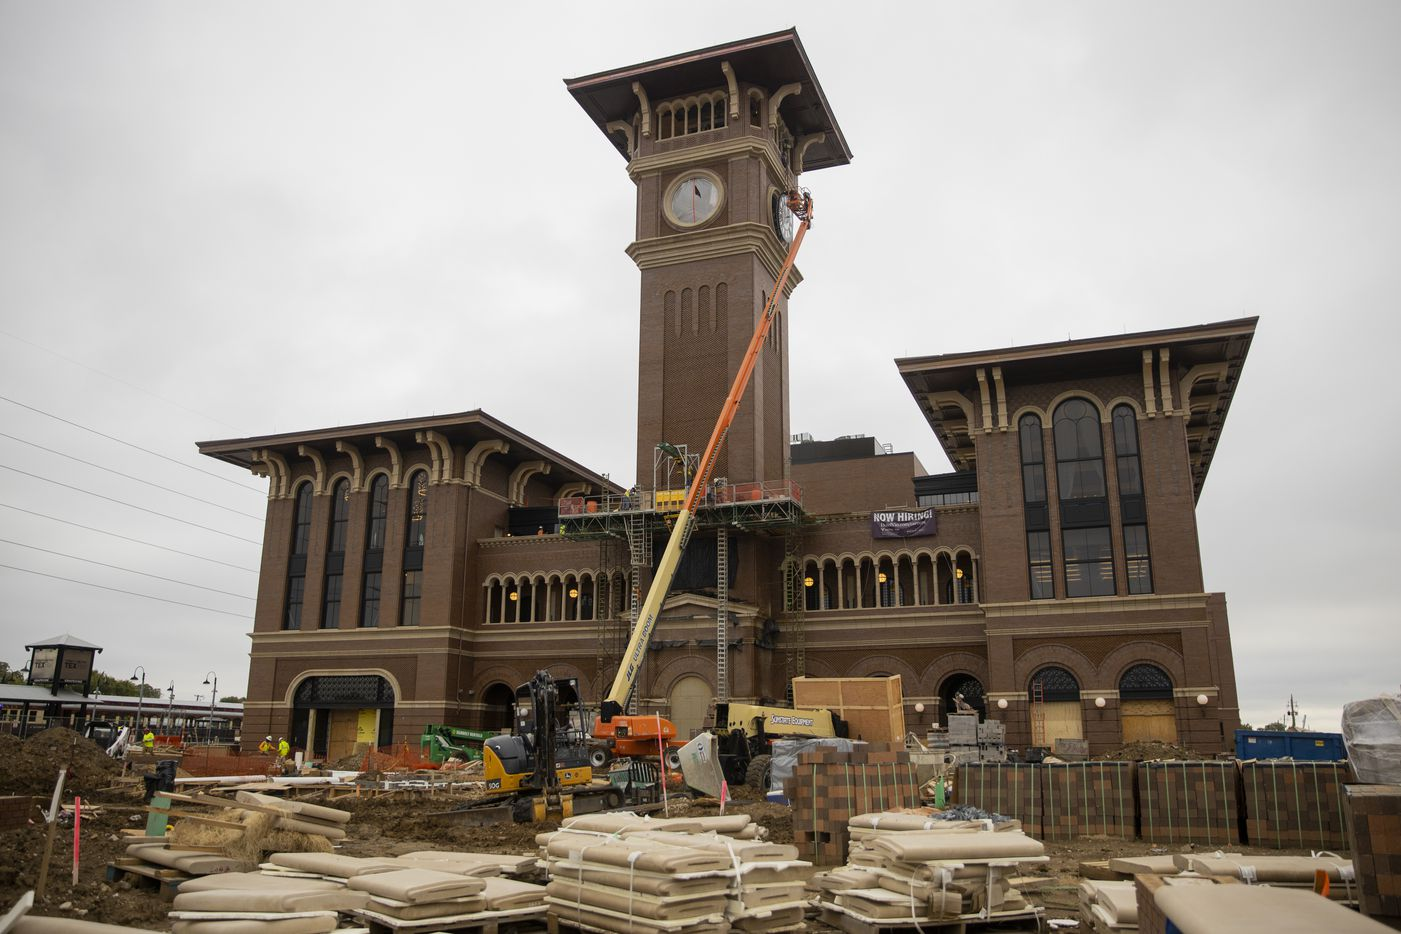 A crew from MEI Rigging & Crating works to install a 12-foot glass clock on the Grapevine Main Station's Observation Tower on Sept. 3, 2020 in Grapevine. The clocks designed by Electric Time Company were designed to be compatible with the Texas-Italianate style of the station. (Juan Figueroa/ The Dallas Morning News)